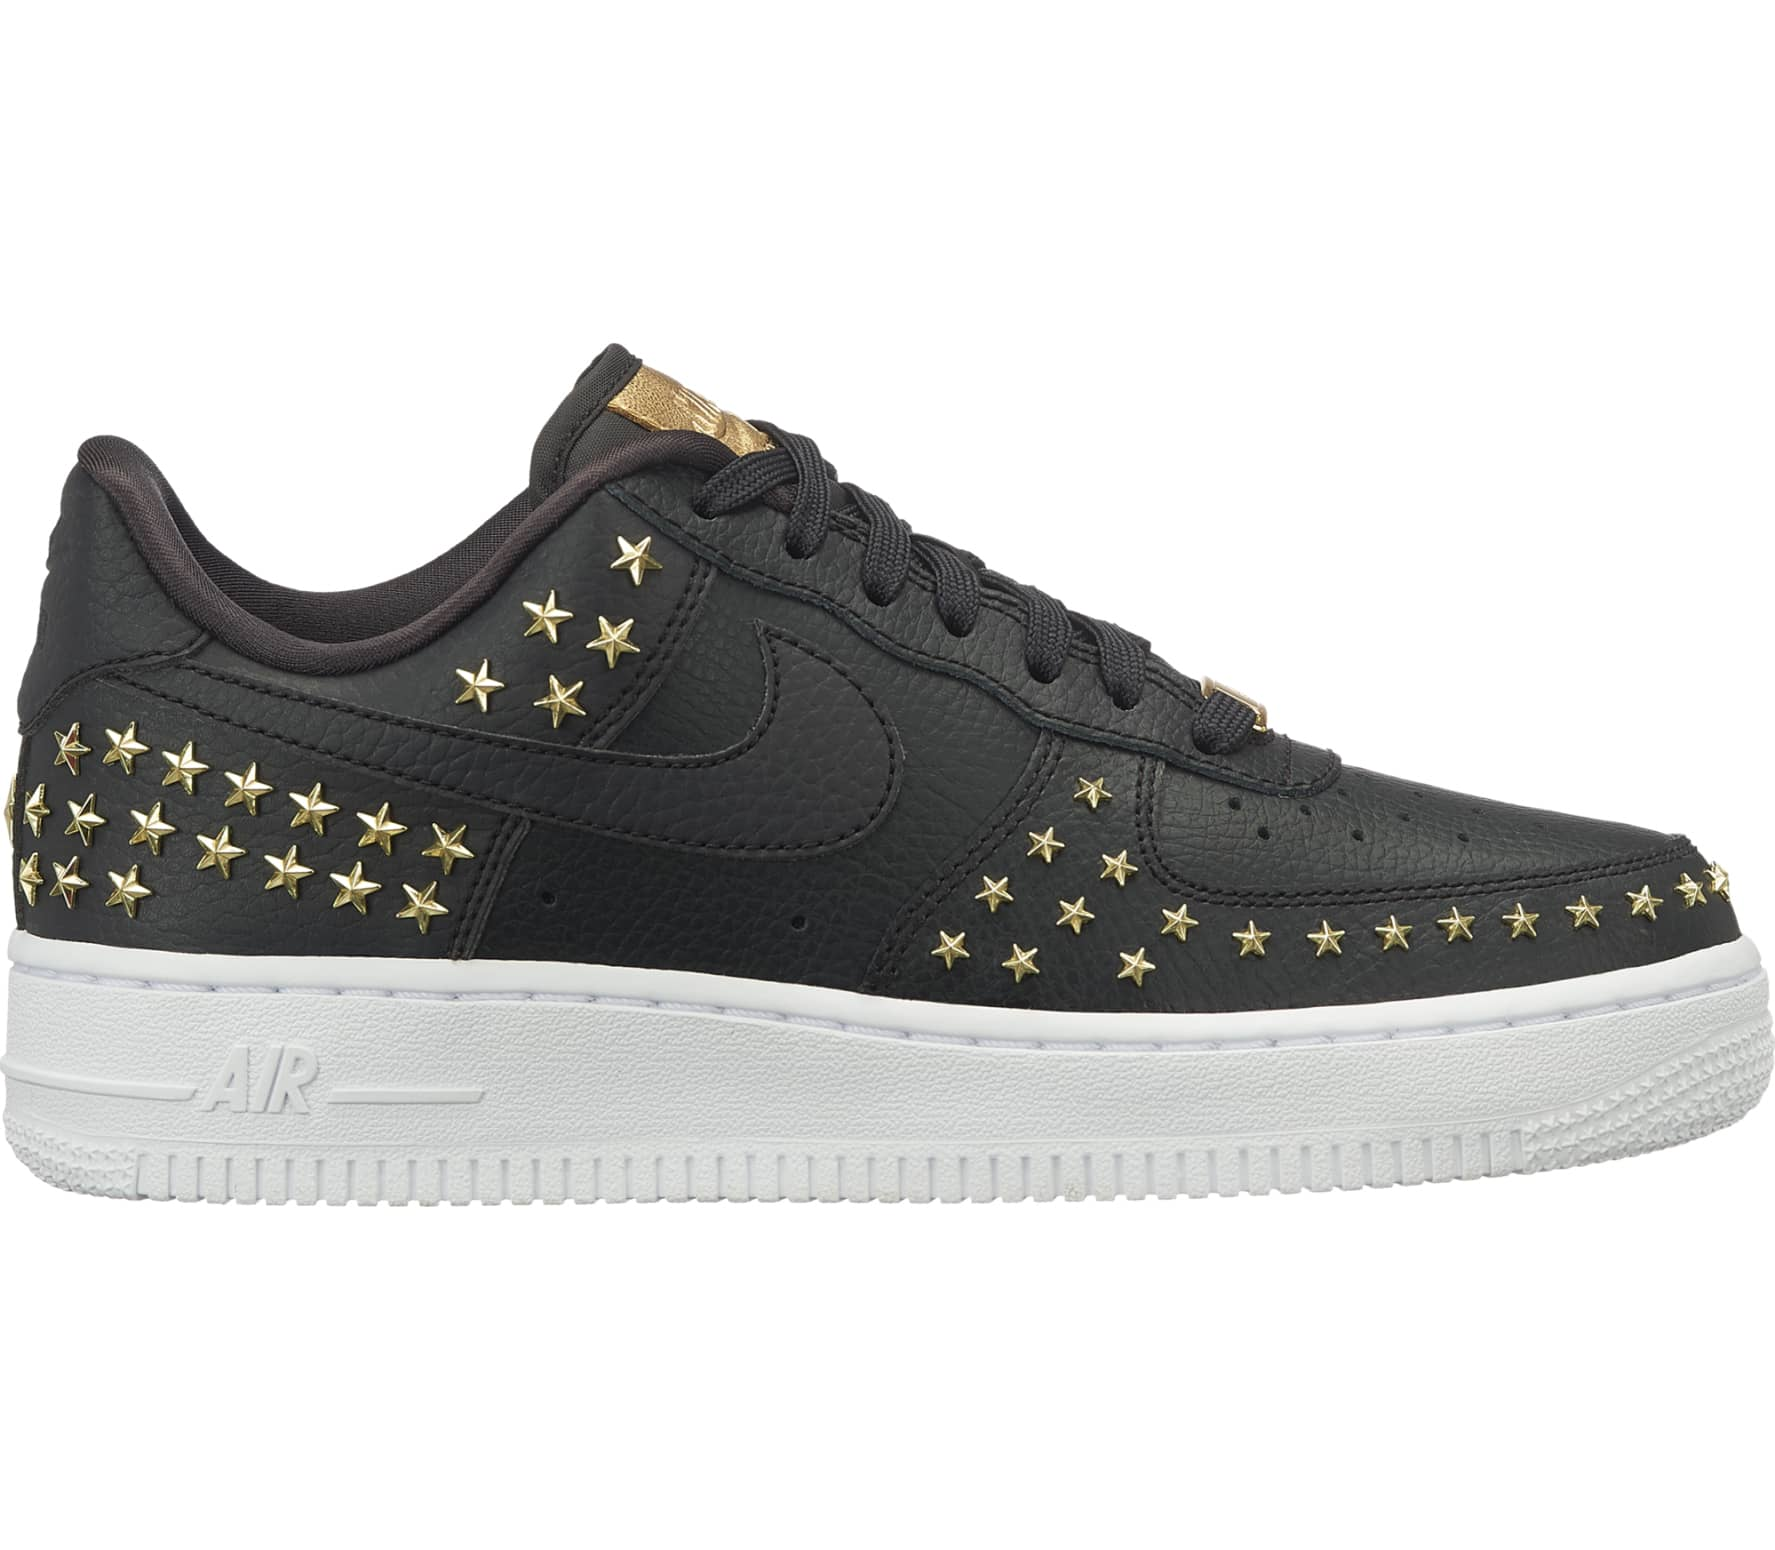 nike sportswear air force 1 39 07 xx damen sneaker schwarz. Black Bedroom Furniture Sets. Home Design Ideas